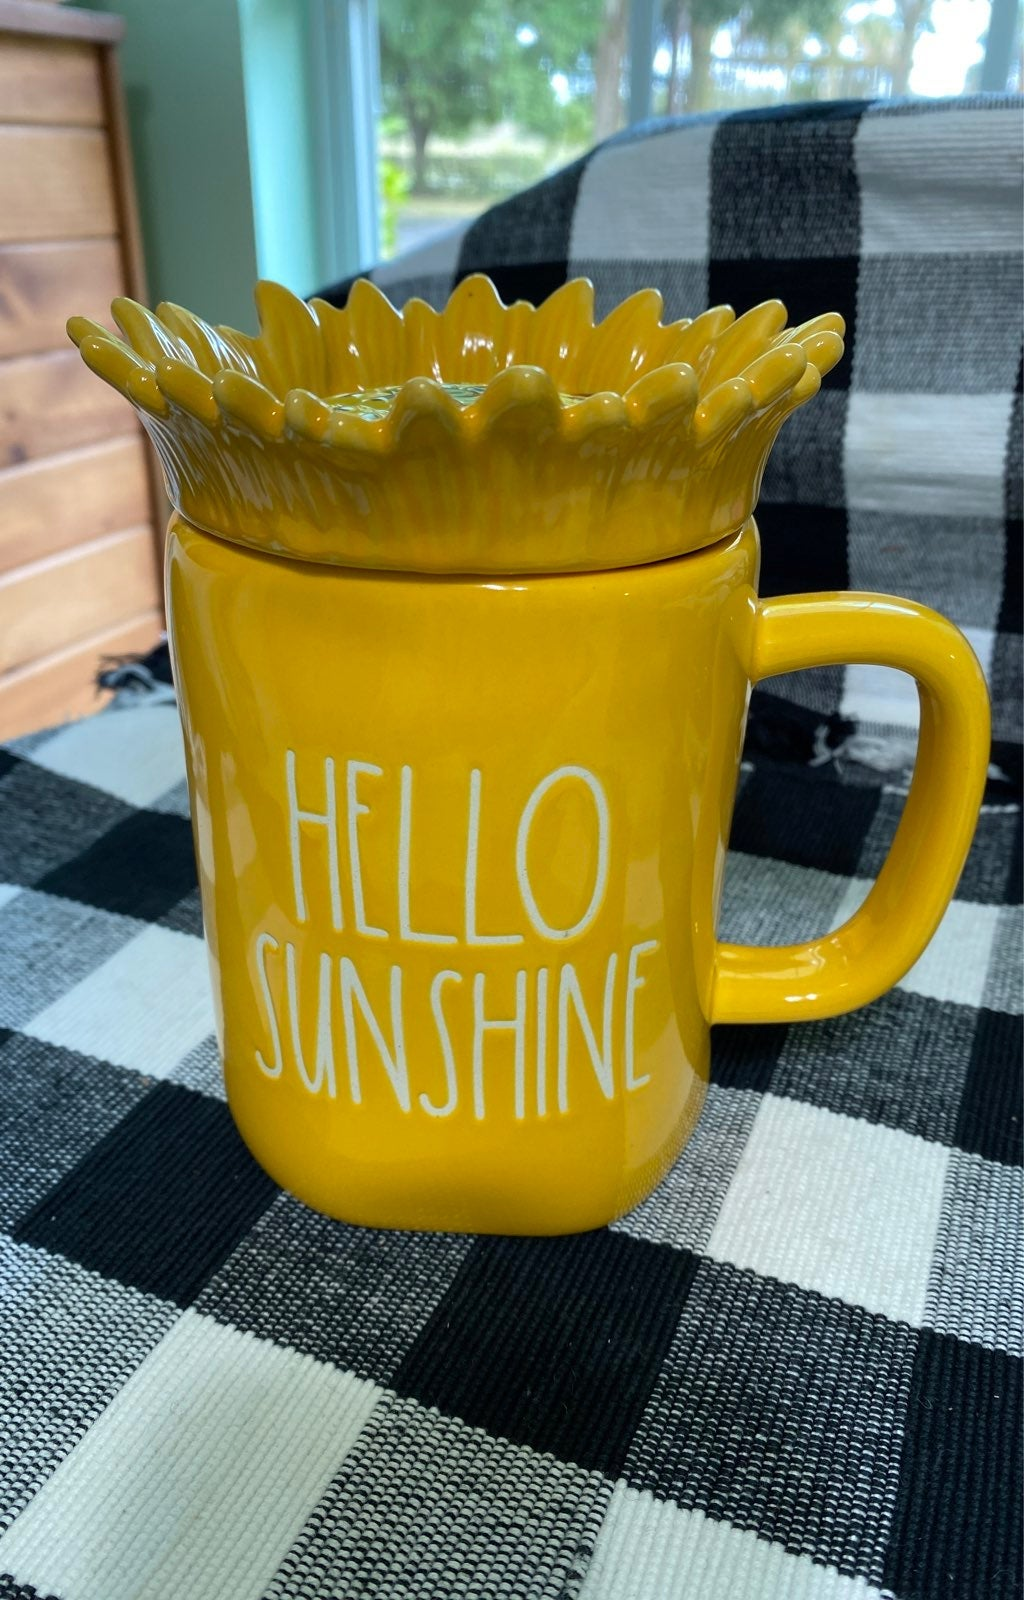 Hello Sunshine mug with topper